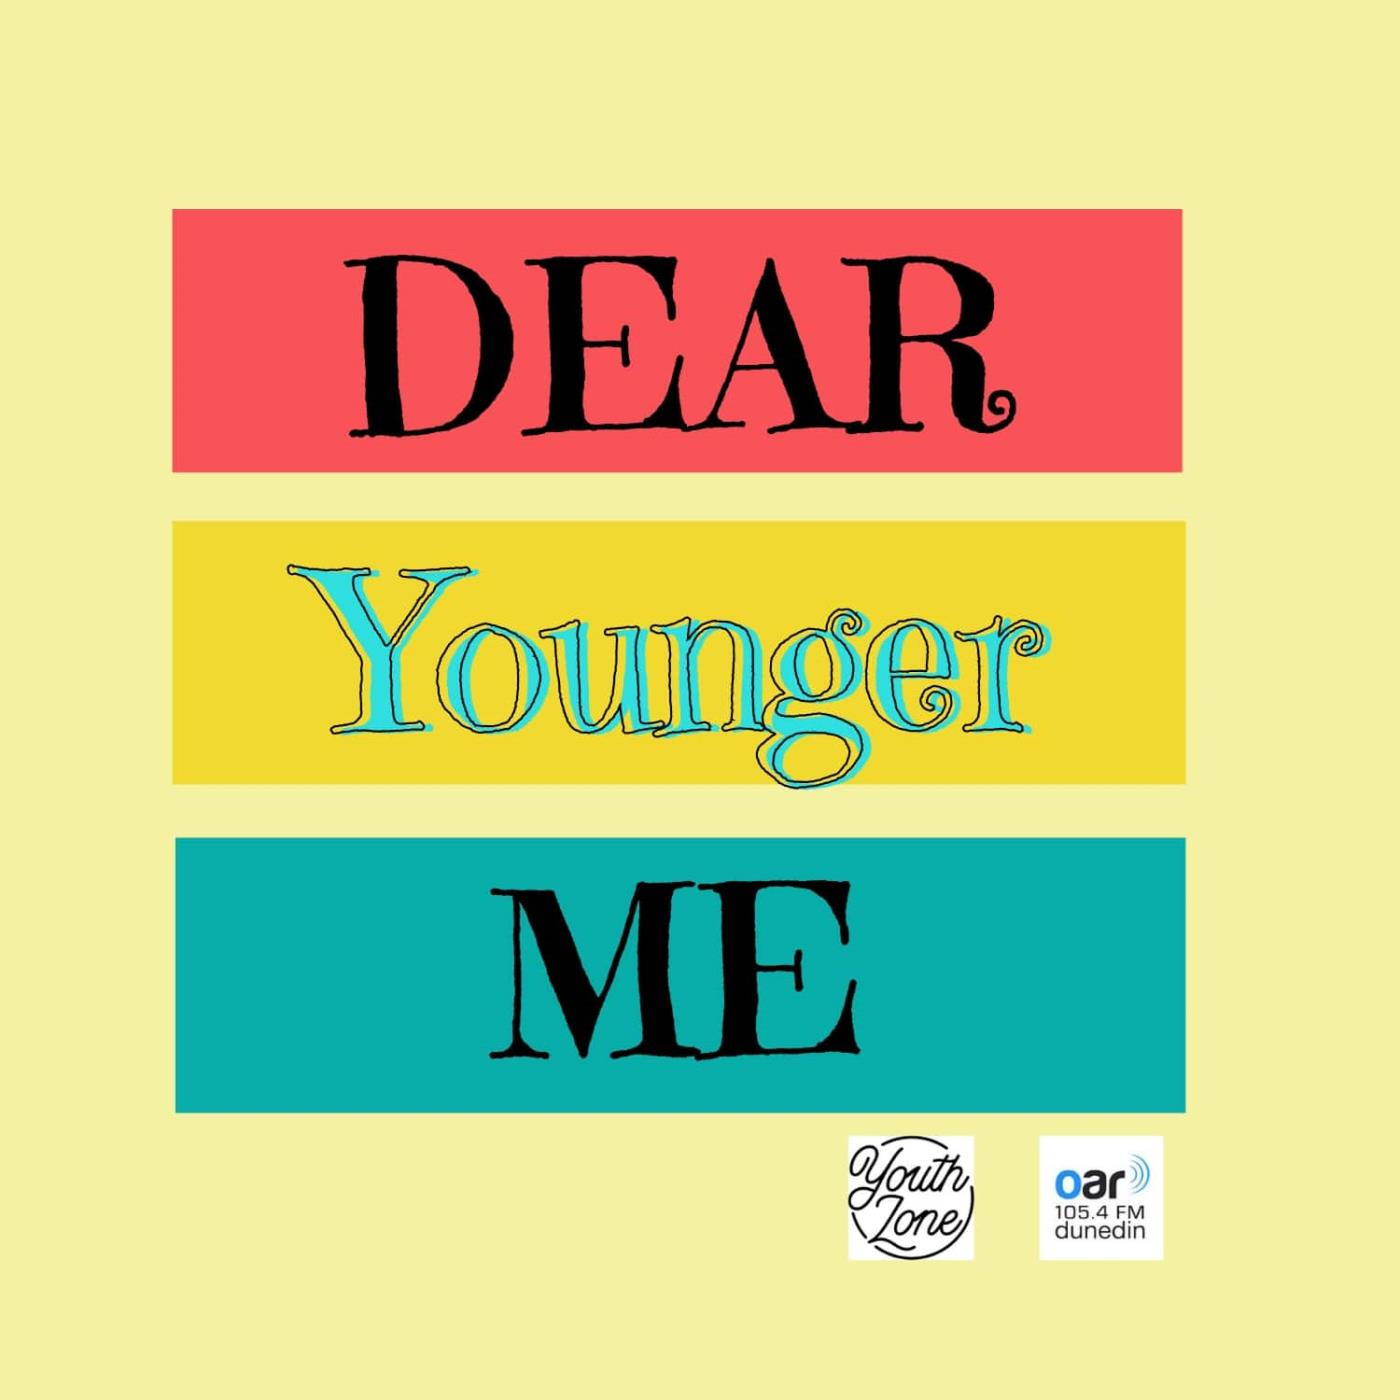 Dear Younger Me on Youth Zone